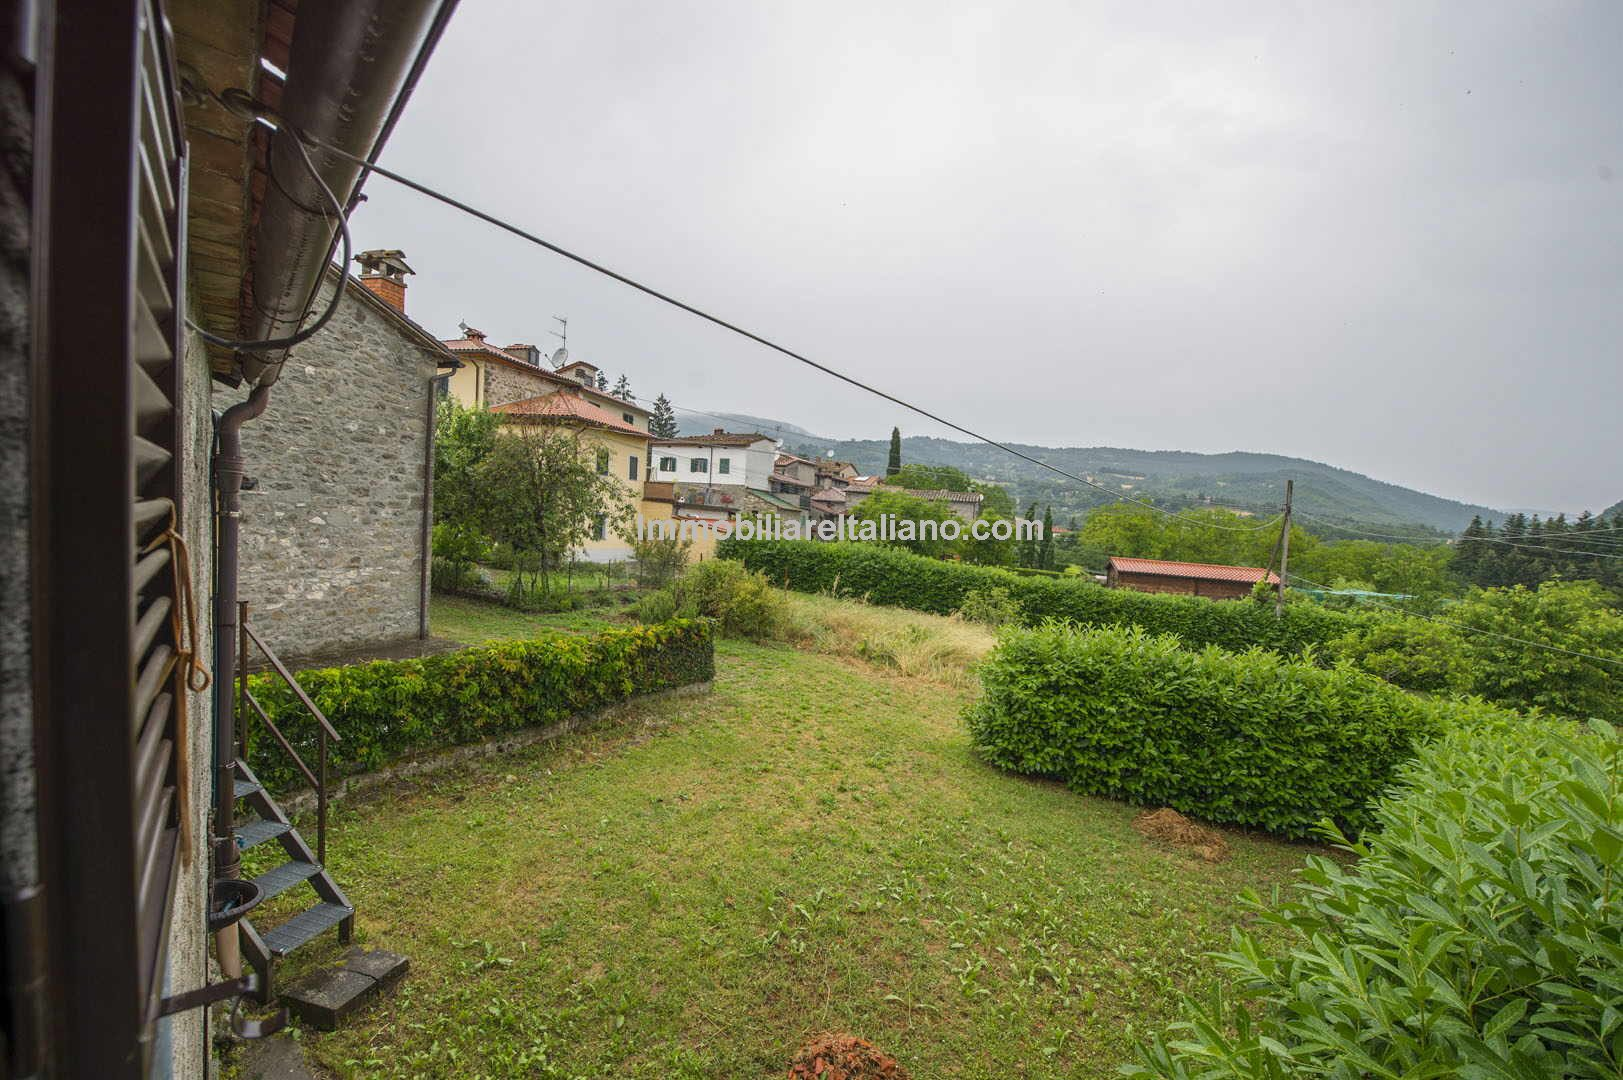 In a small hamlet close to Caprese Michelangelo in Tuscany is this 3 bedroomed semi-detached house for sale with a small garden